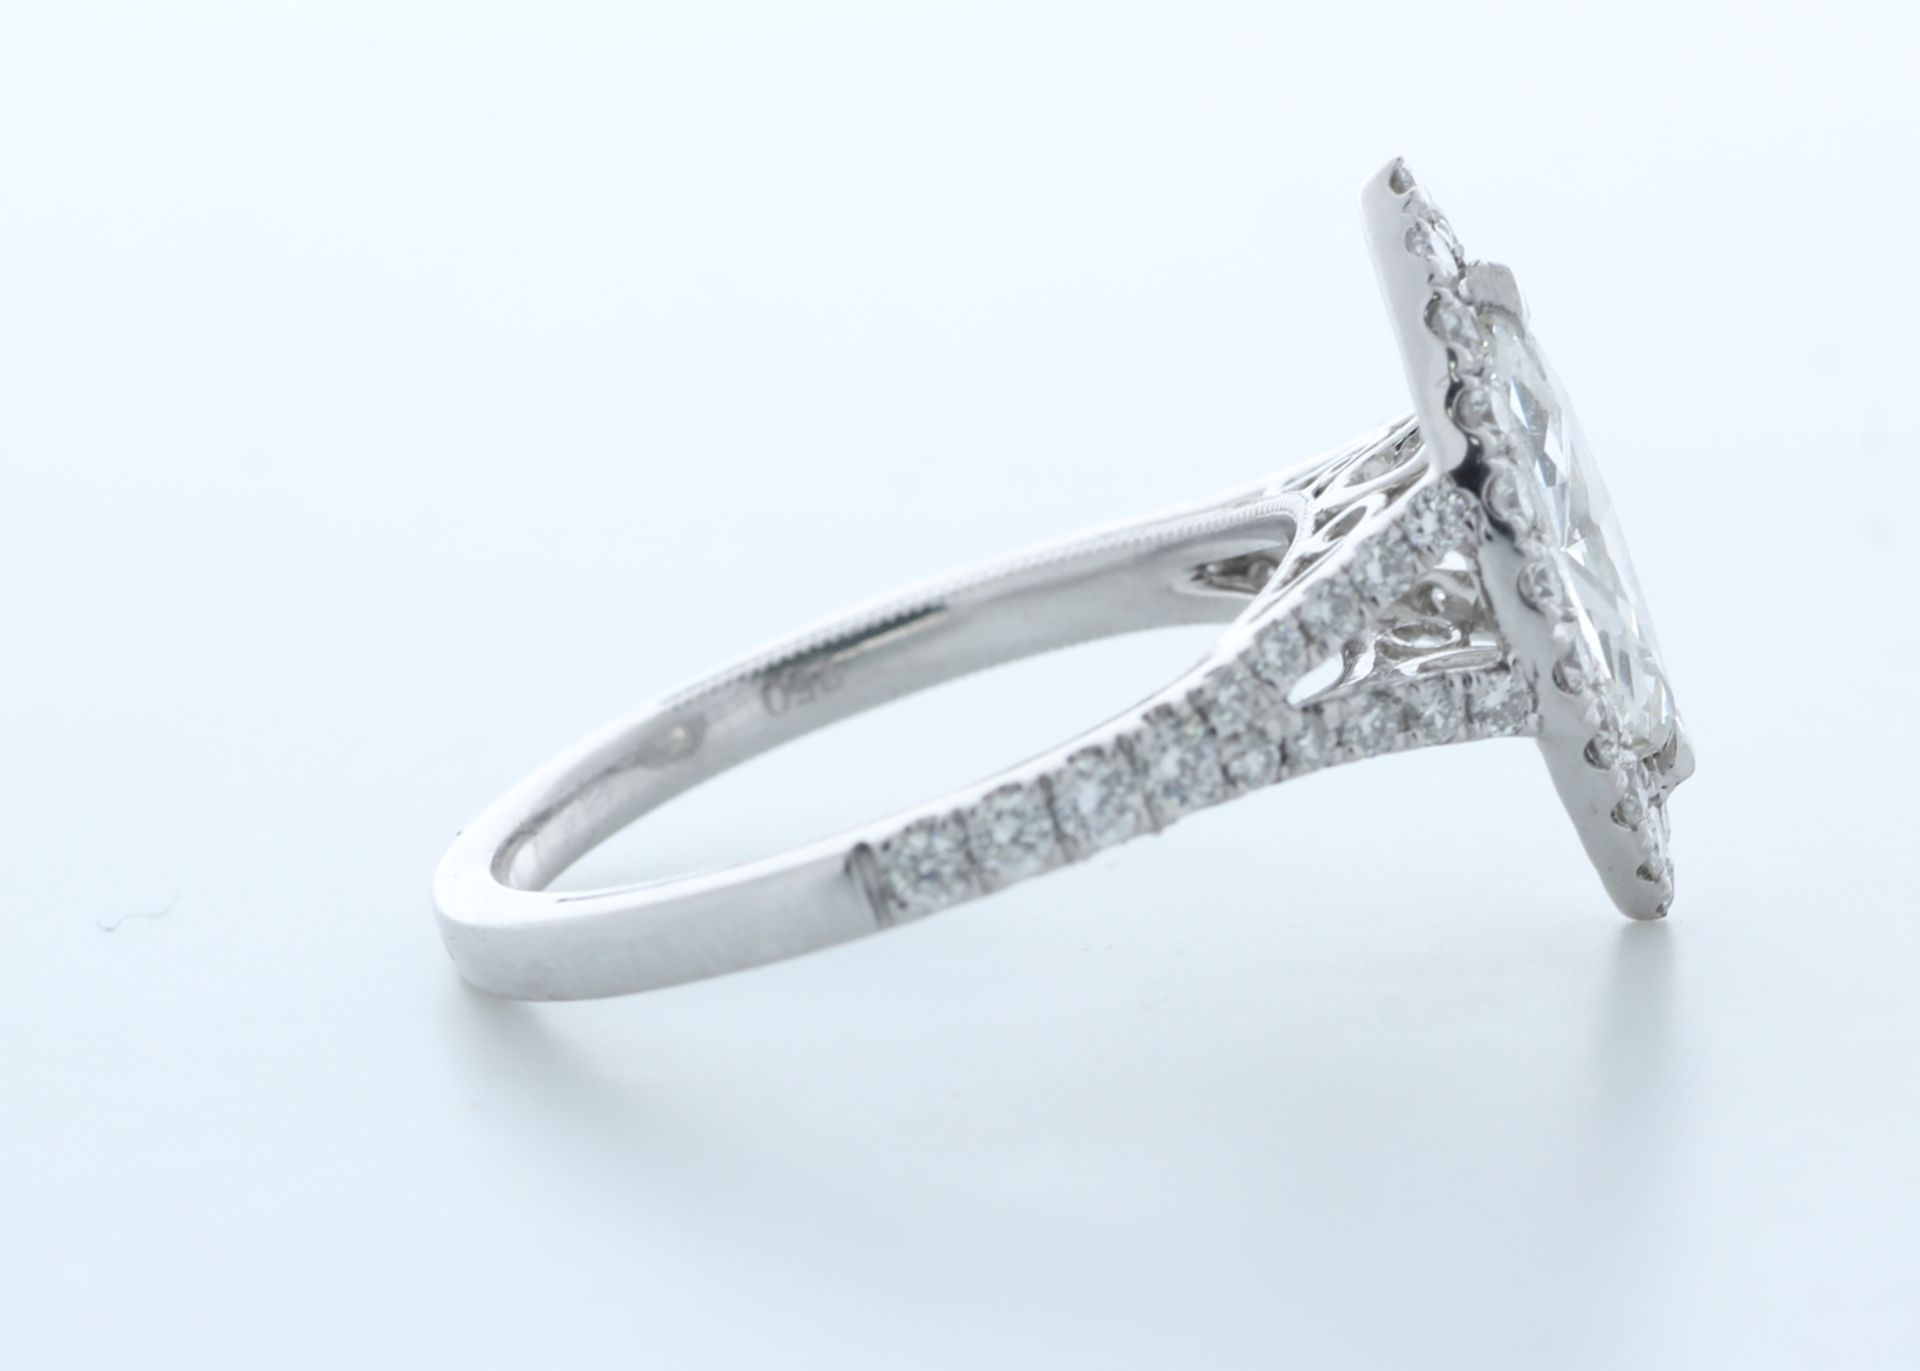 18ct White Gold Single Stone With Halo Setting Ring 1.56 (0.90) Carats - Valued by IDI £16,000. - Image 4 of 5